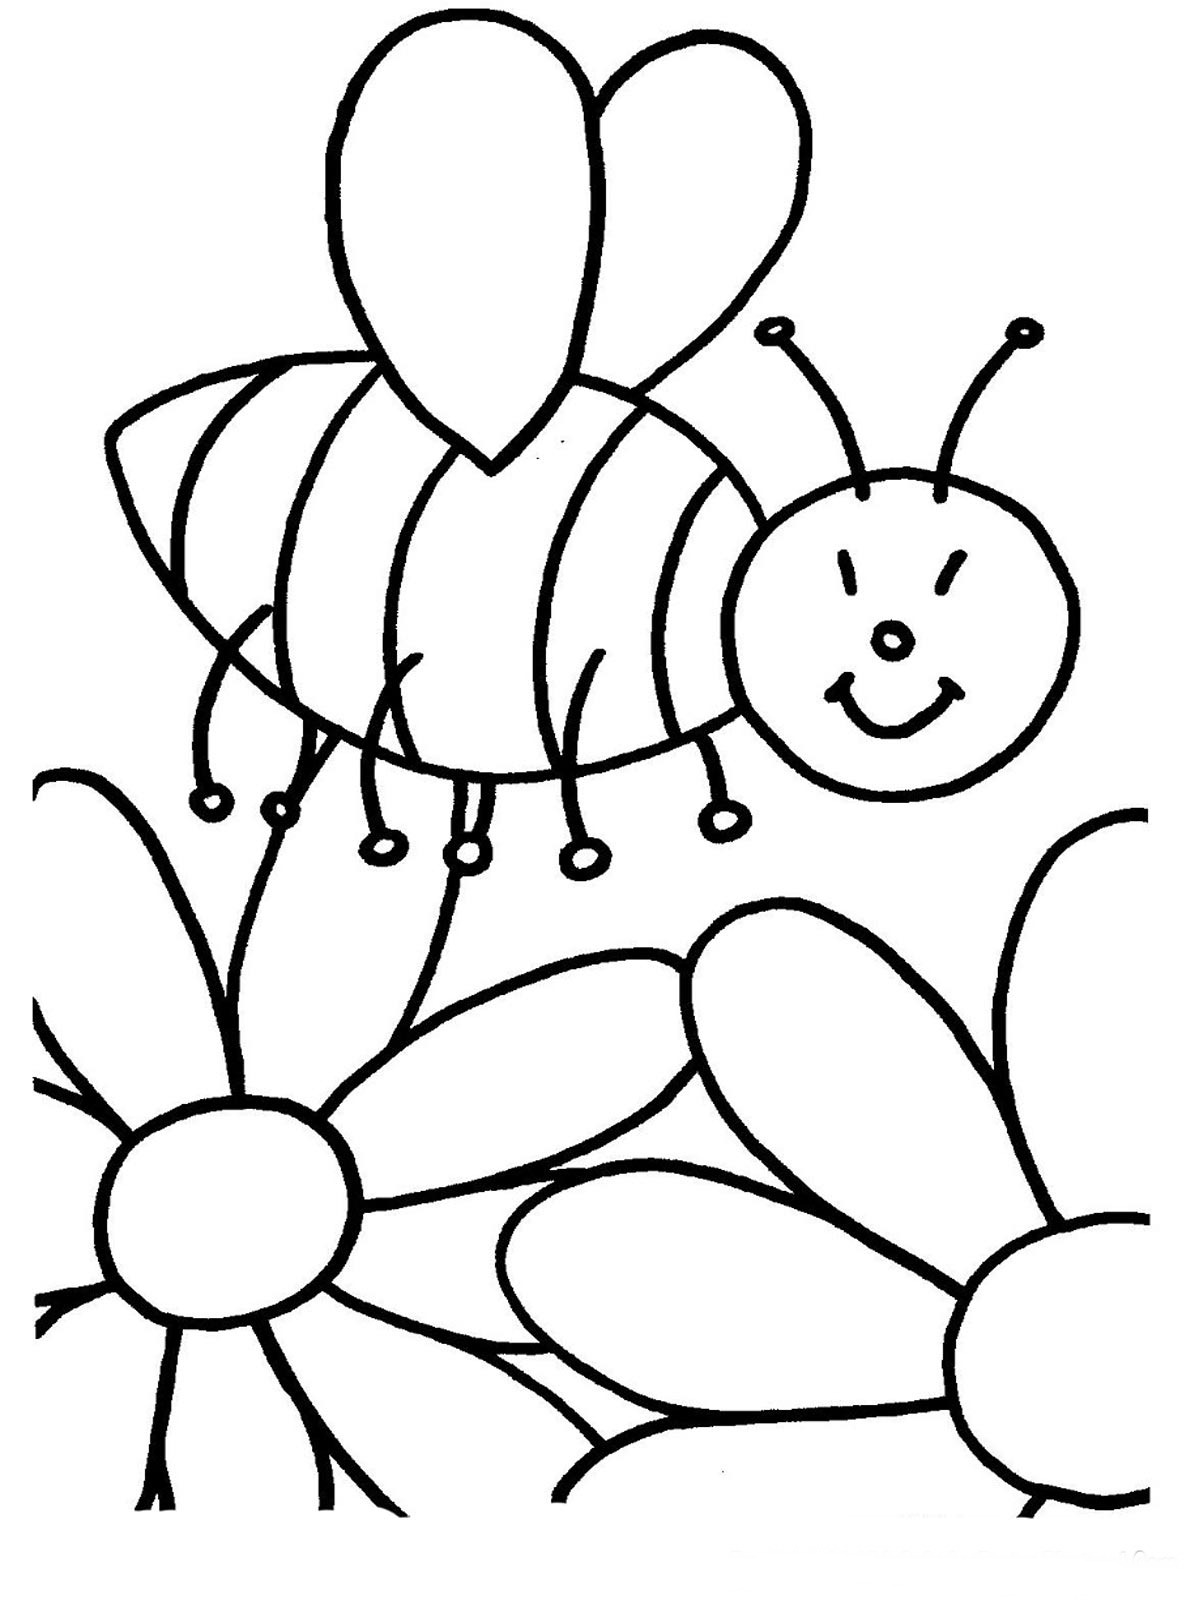 1200x1600 Free Printable Coloring Pages For Children Flower Wallpaper Bees